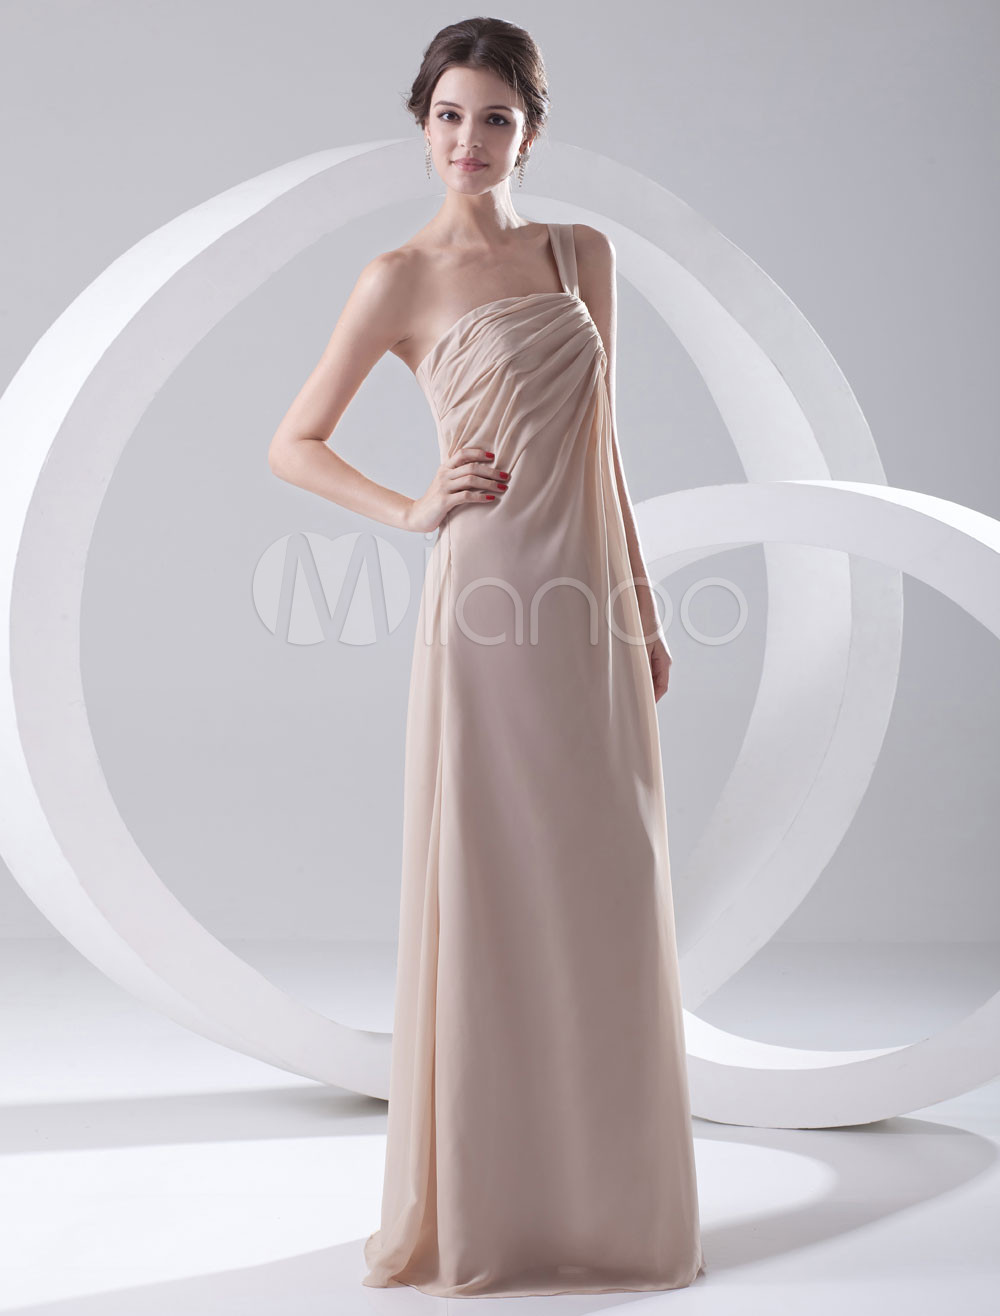 A-line Champagne Chiffon Ruched One-Shoulder Floor-Length Bridesmaid Dress For Wedding